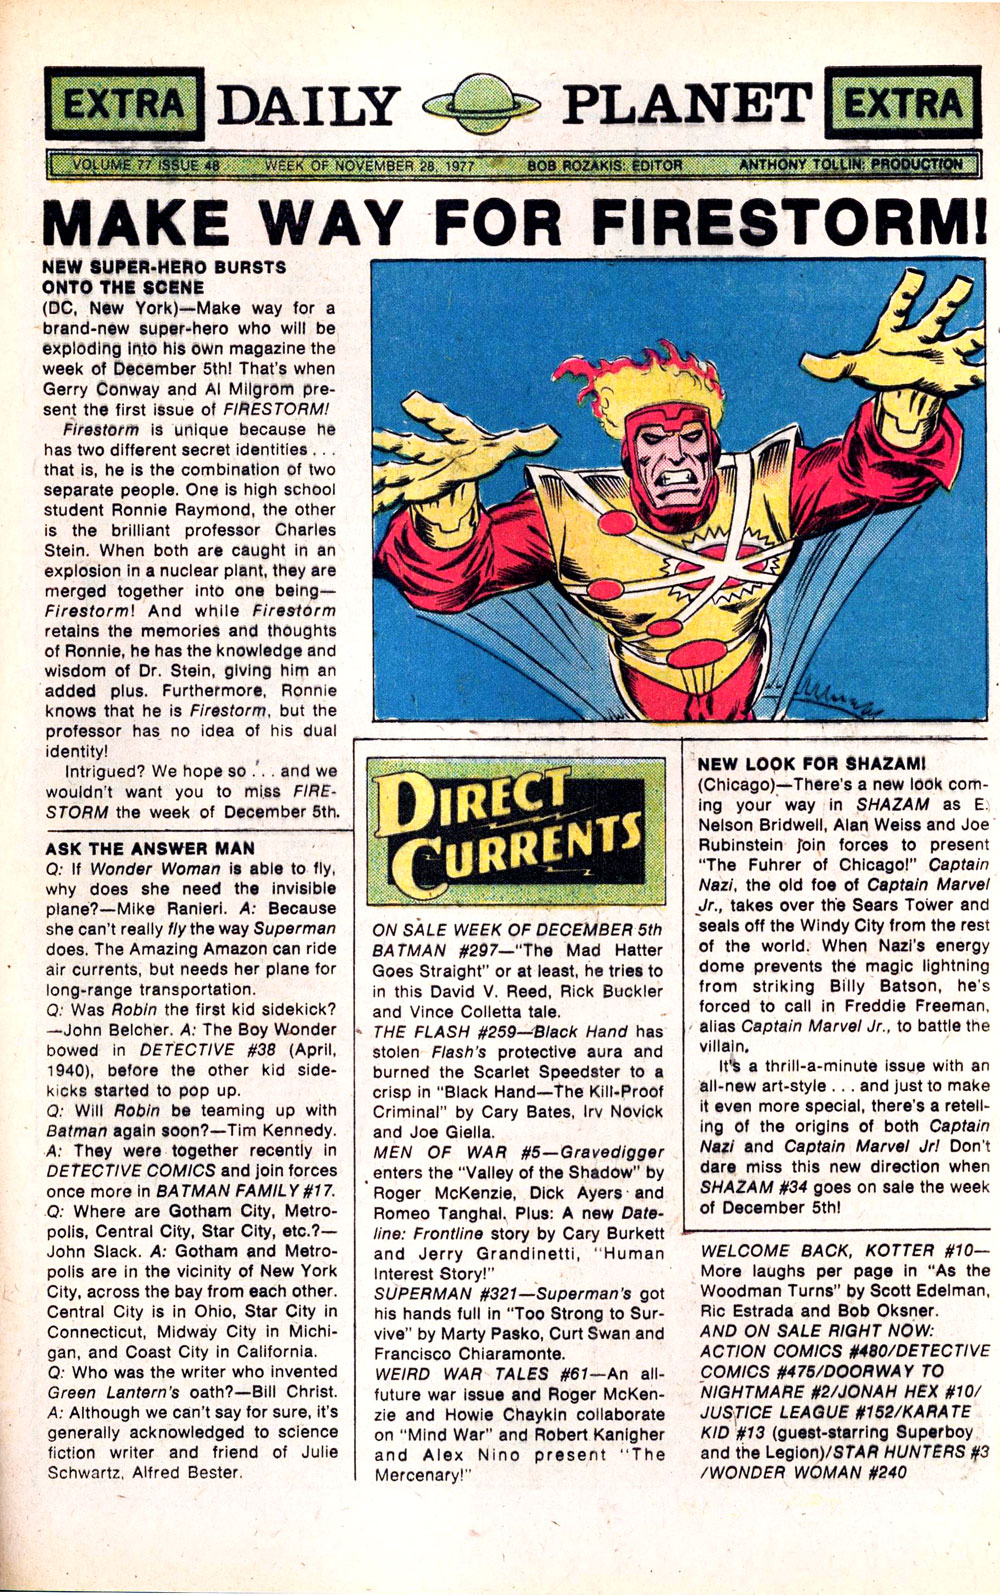 DC Comics Daily Planet featuring Firestorm from November 28, 1977